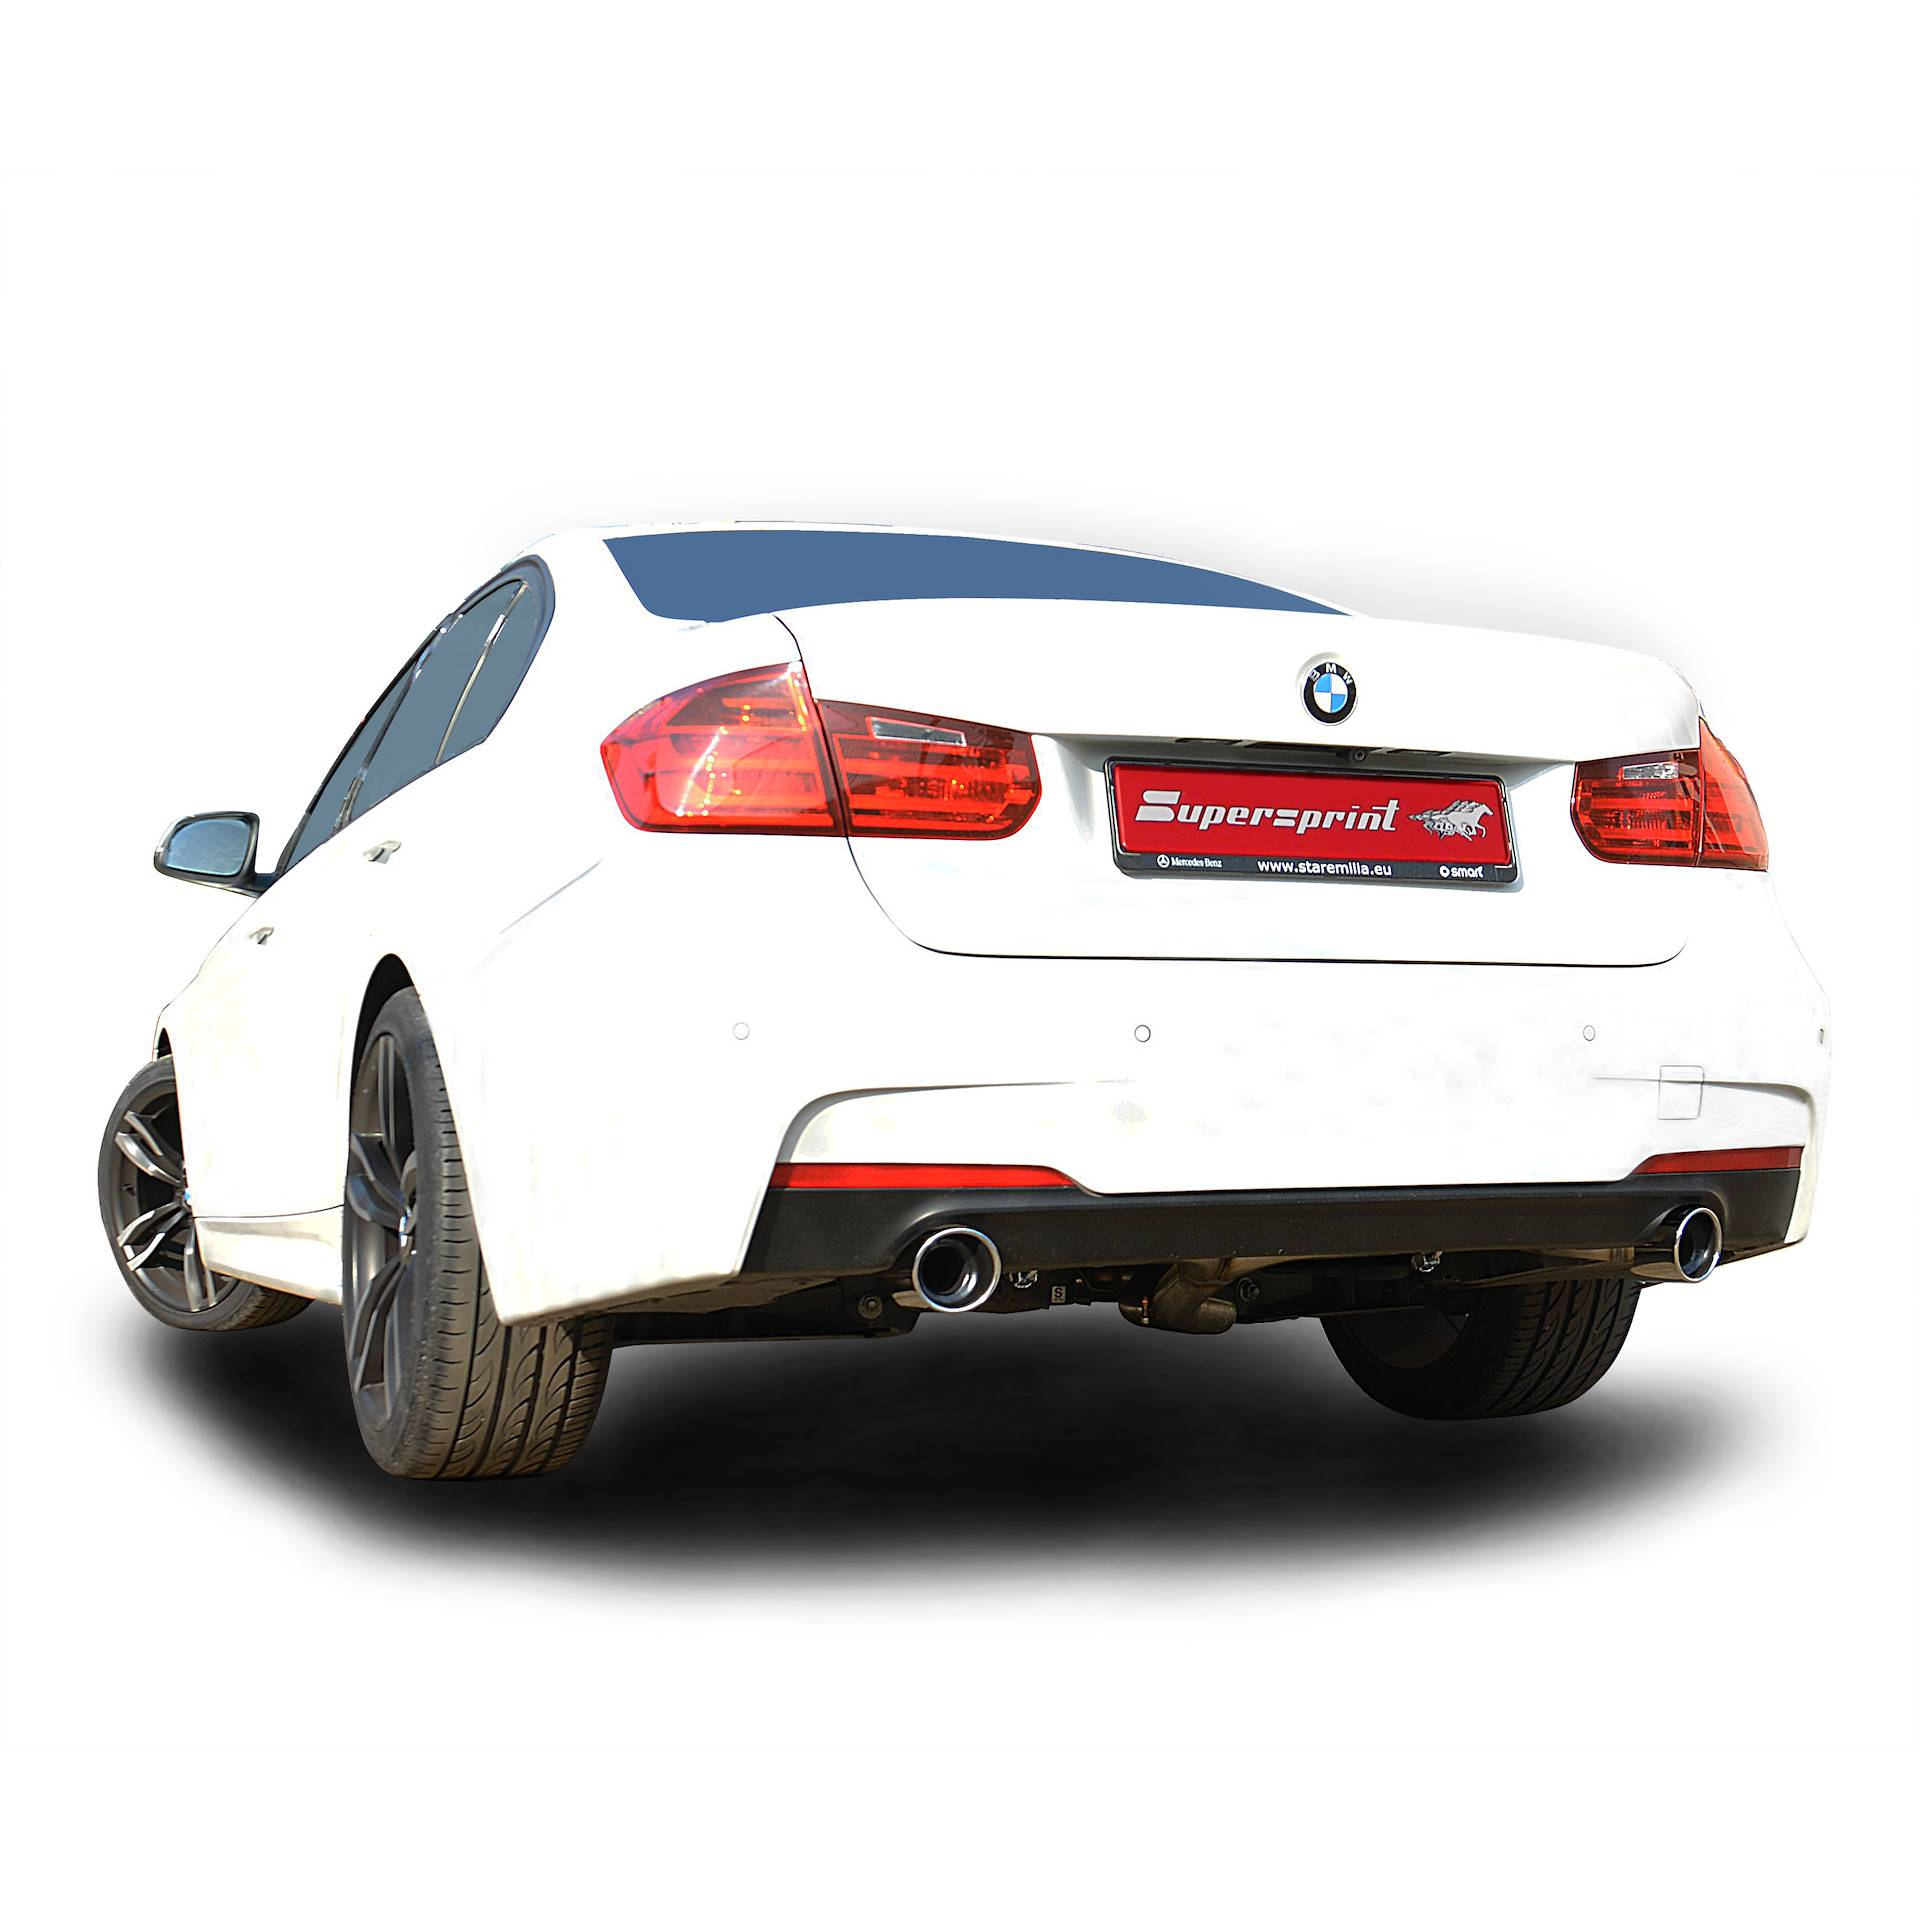 BMW - BMW F30 / F31 (Berline-Break) 320d (184  - 190 Hp) 2012 ->